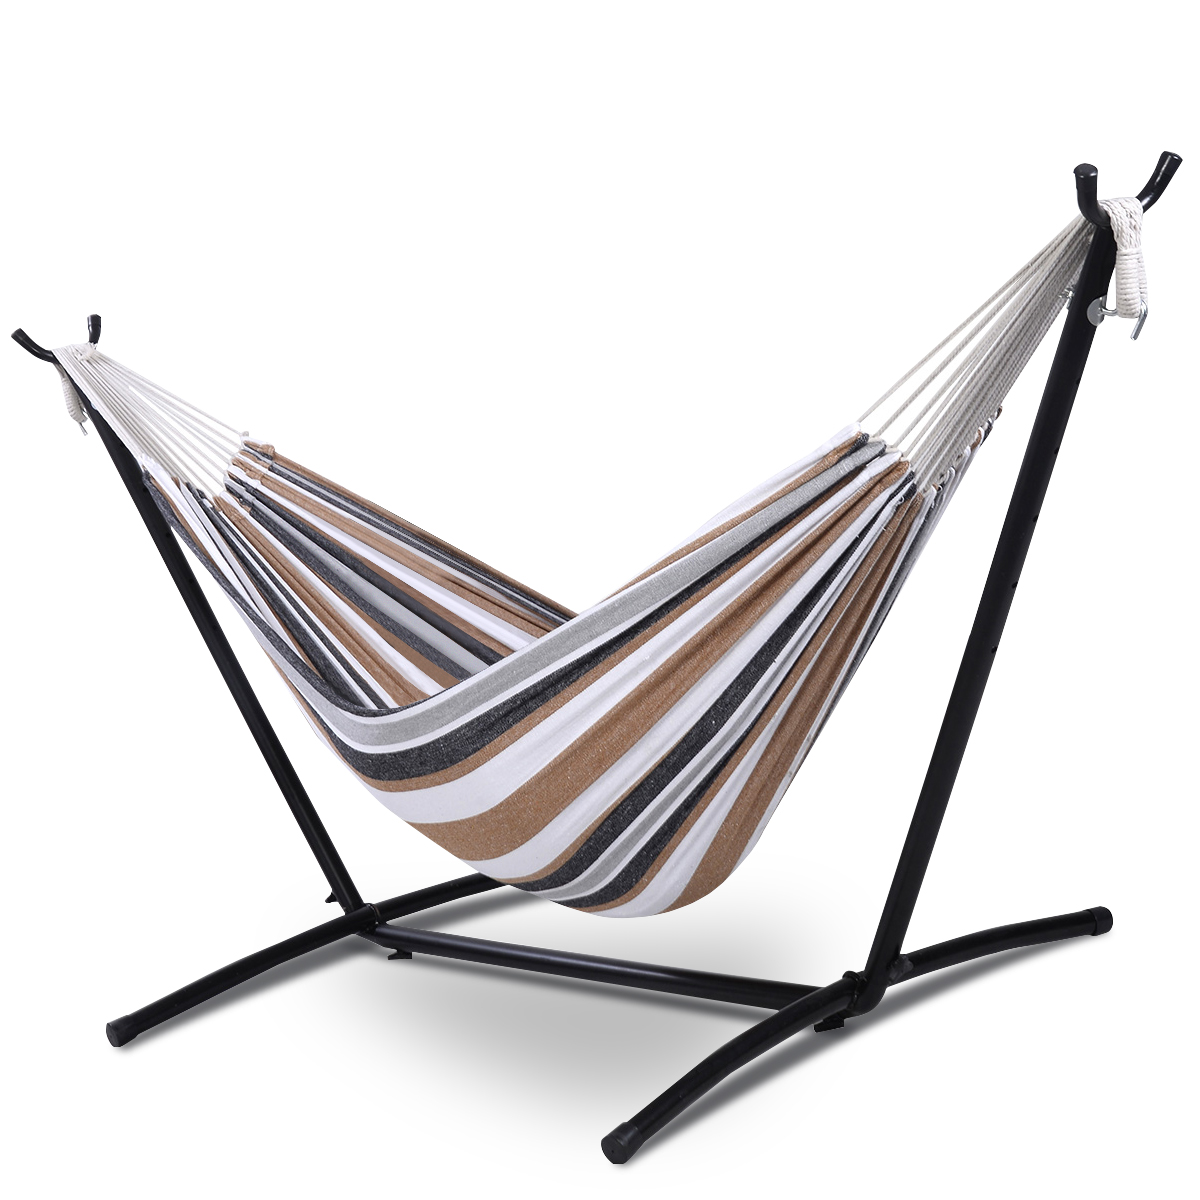 Costway Double Hammock with Space Saving Steel Stand Includes Portable Carry Bag by Costway